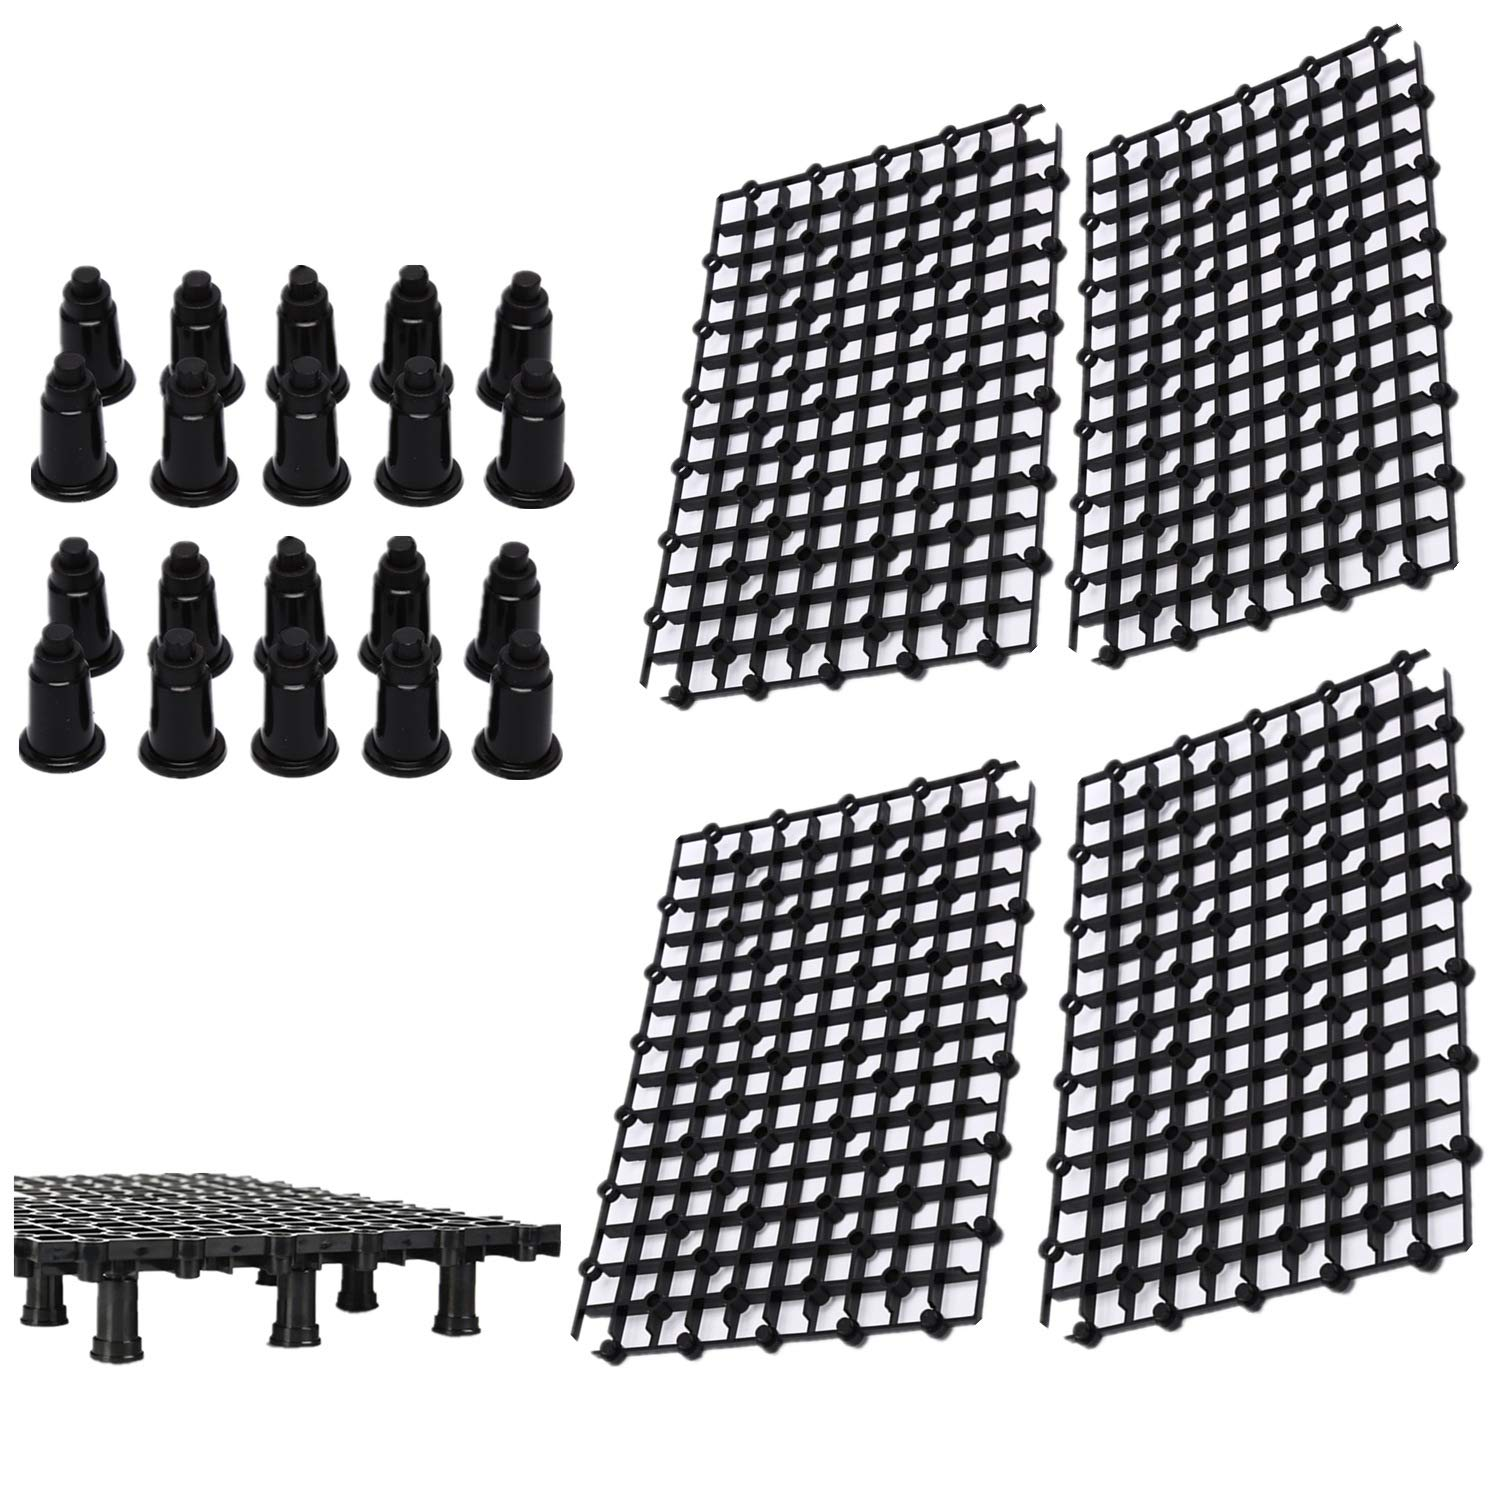 Ioffersuper 4 Pcs Aquarium Isolation Board Fish Tank Divider with 20 Pcs Supporty Feet,Black by Ioffersuper